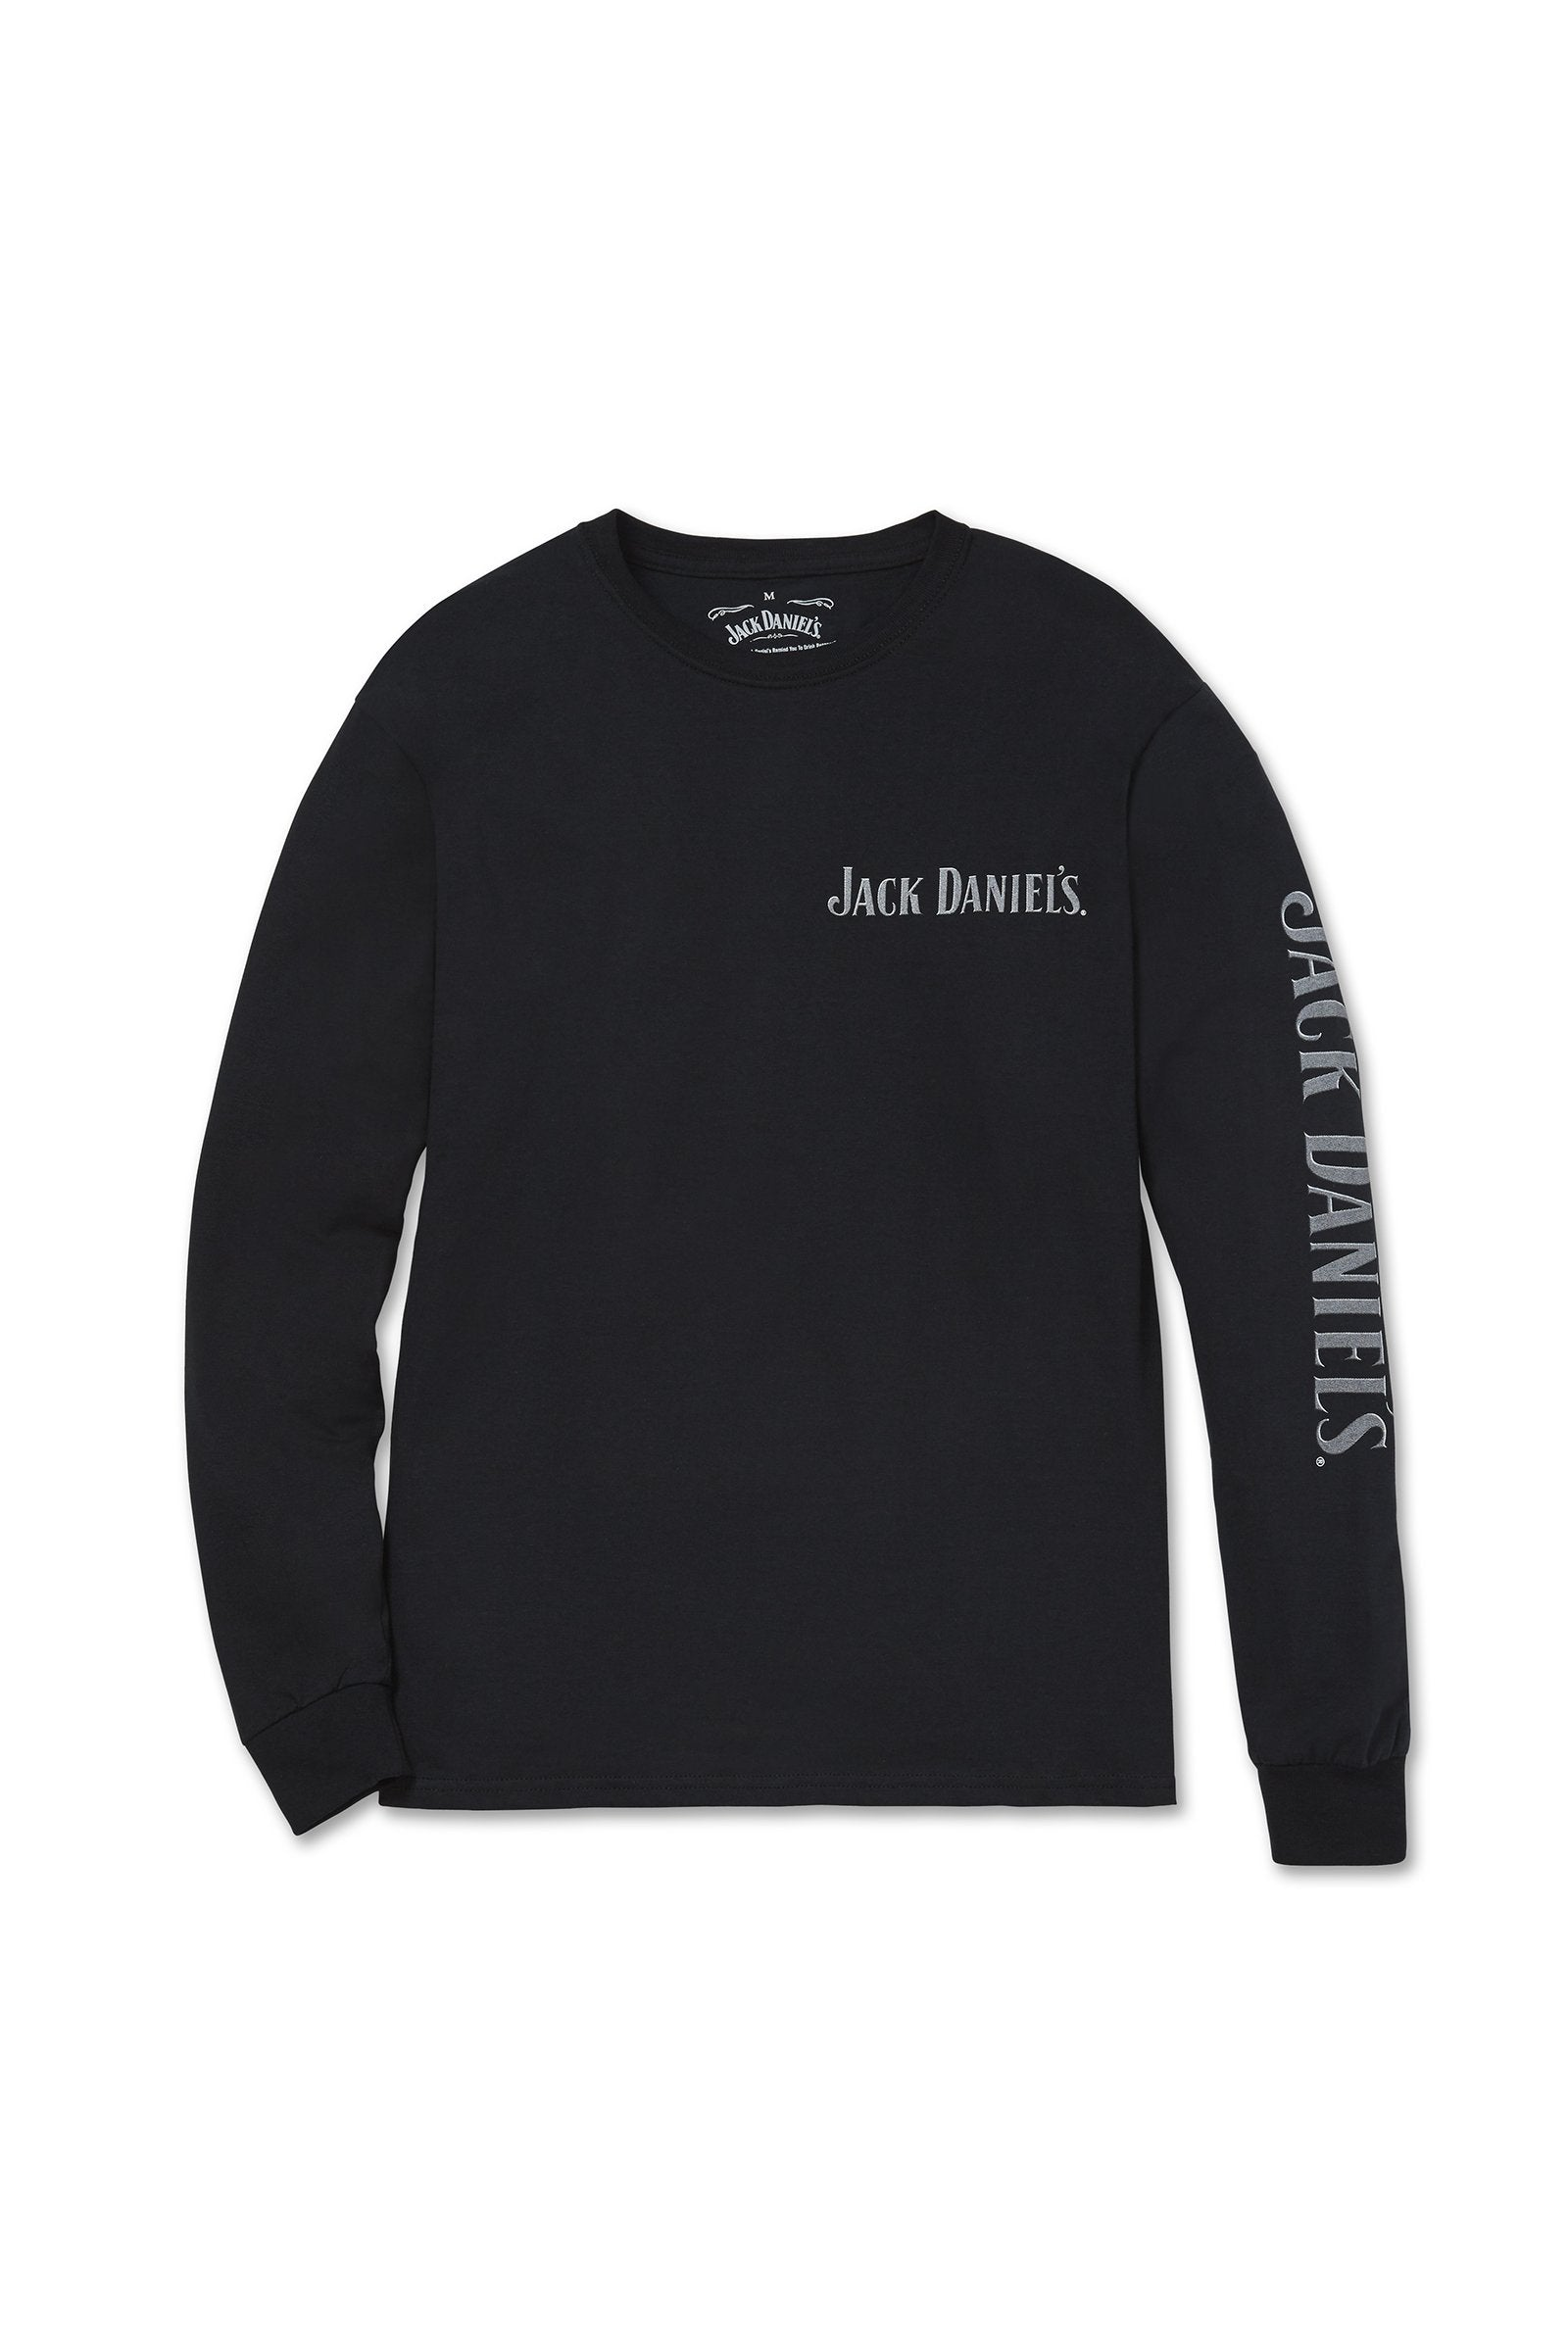 Men's Long Sleeve Jack Daniel's Bottle T-Shirt | Ely Cattleman